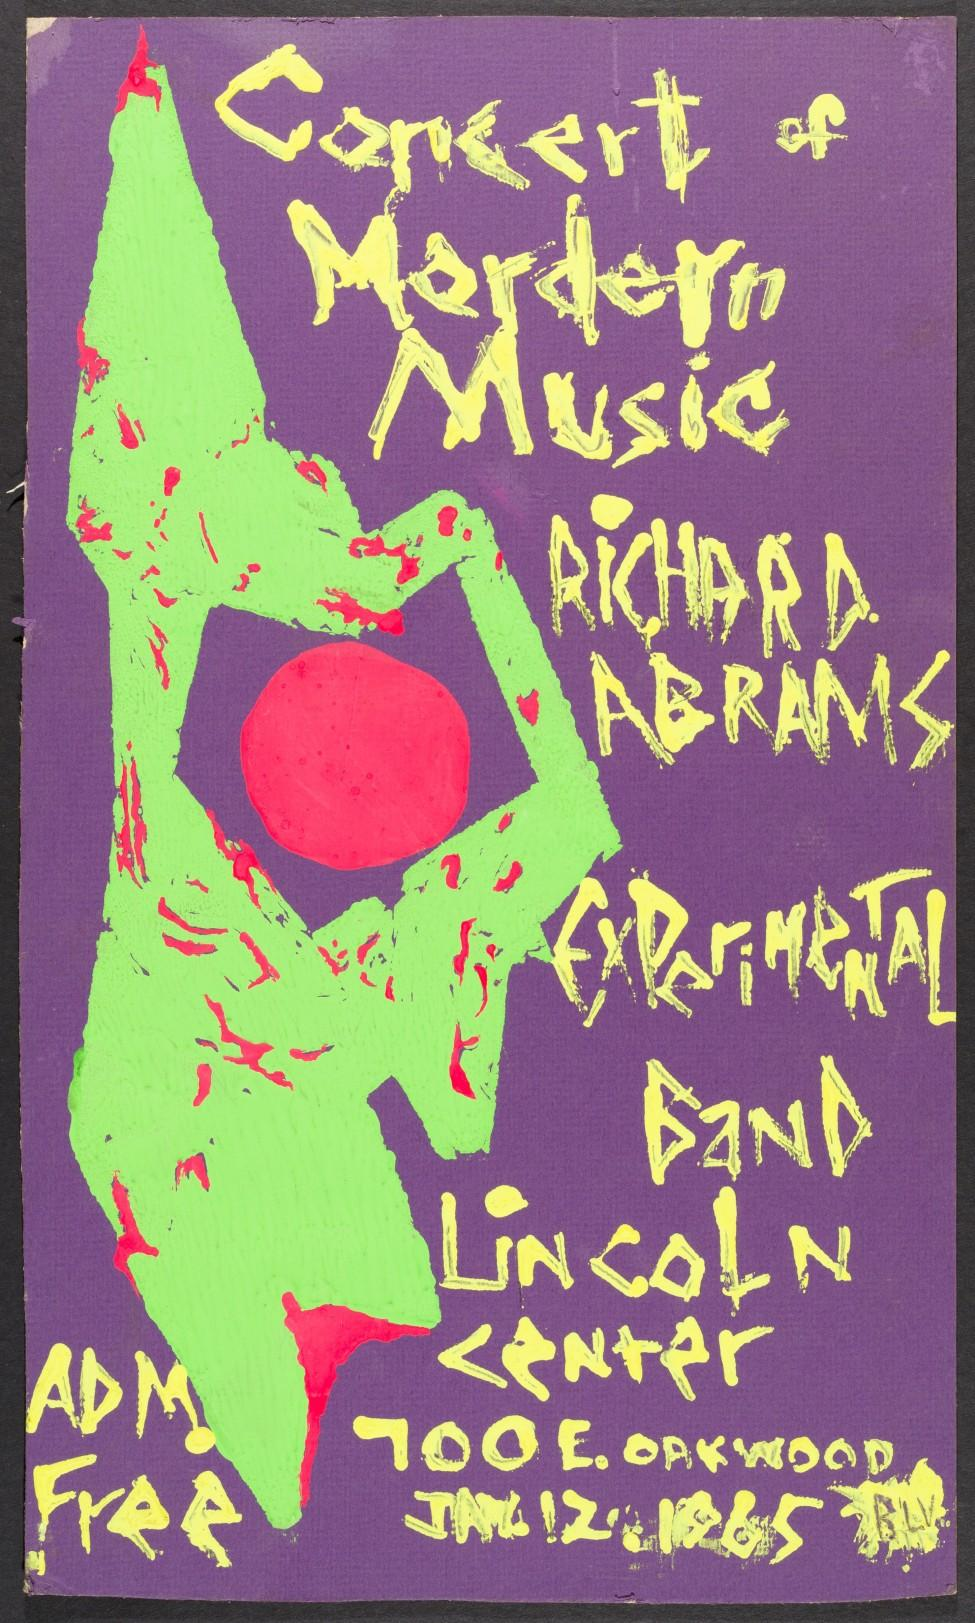 A purple poster with a lime green and red abstract illustration and yellow painted text advertising a concert by Richard Abrams's experimental band at the Lincoln center.